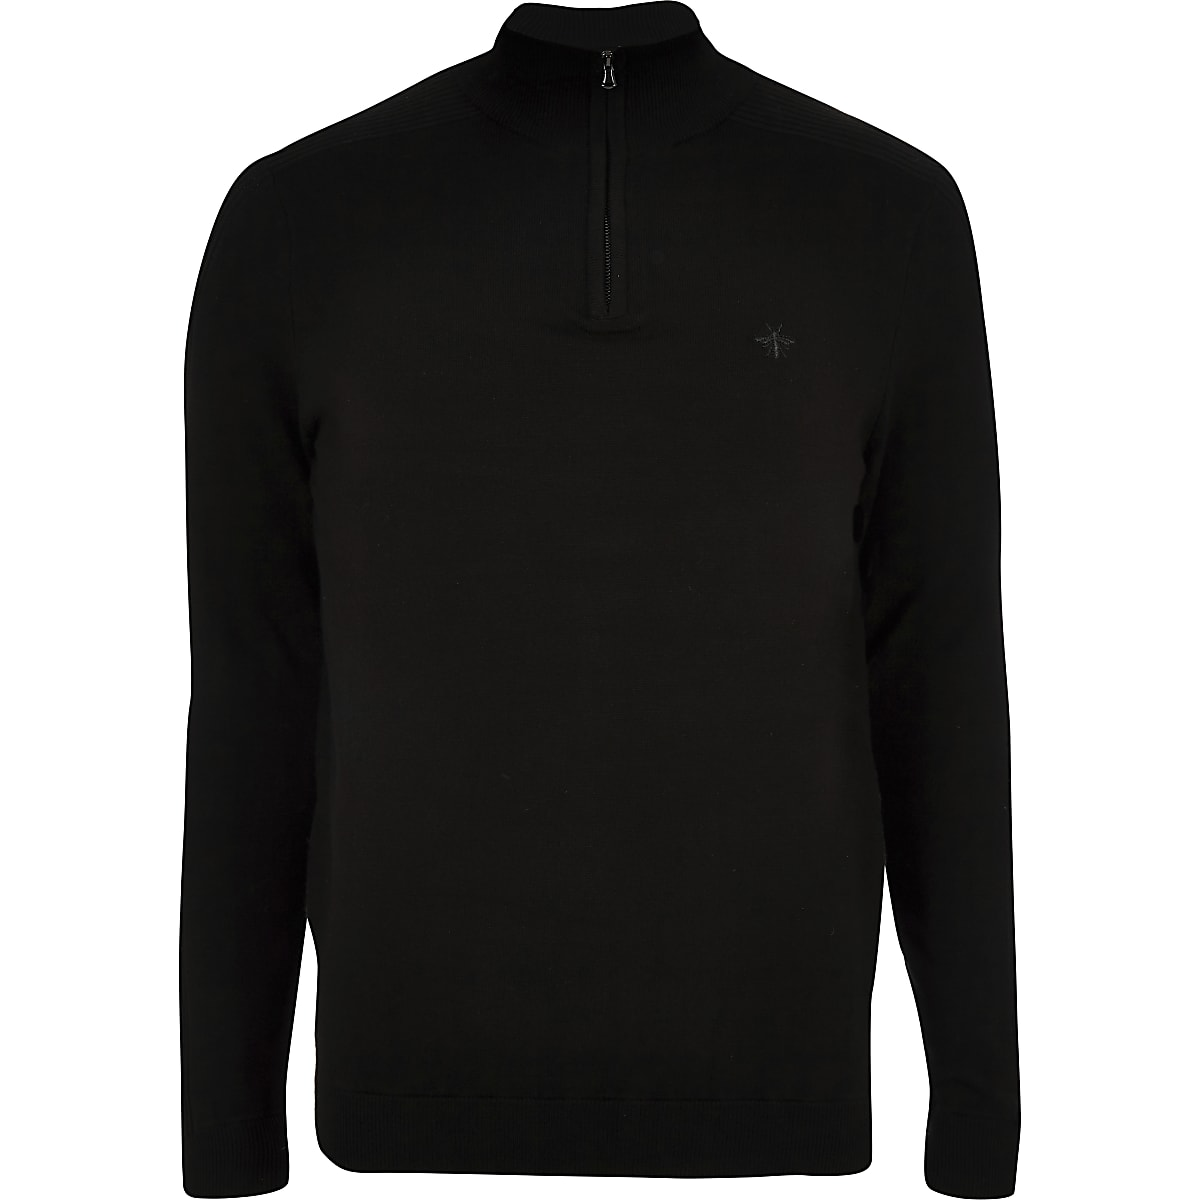 Black zip-up slim fit funnel neck jumper